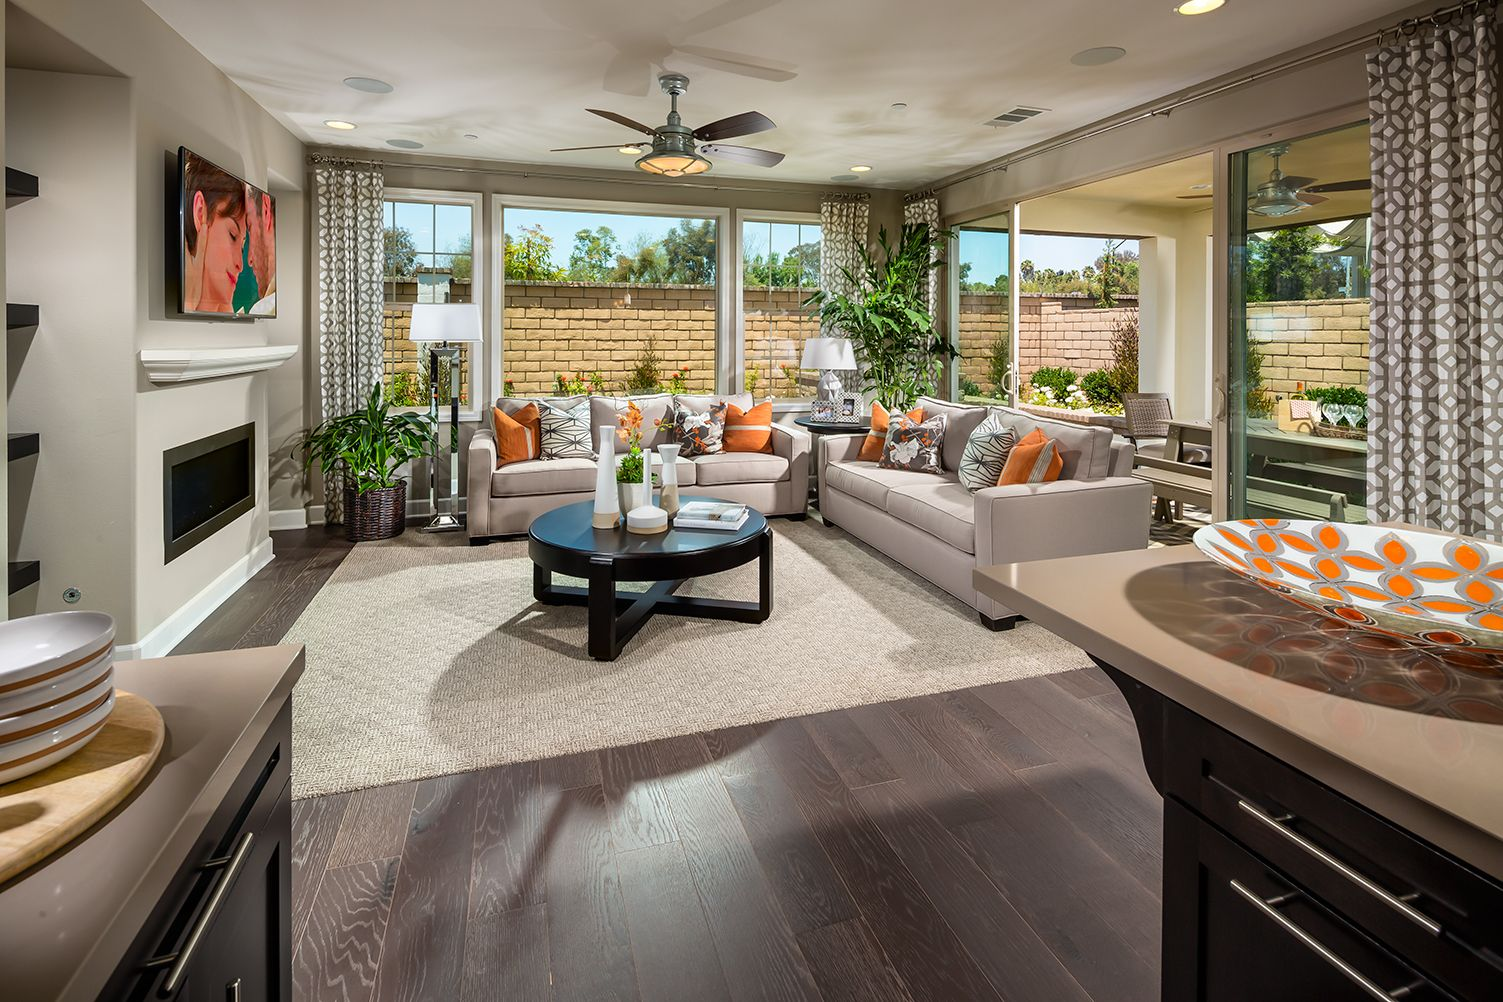 indoor outdoor living in style at casabella | luxury new homes